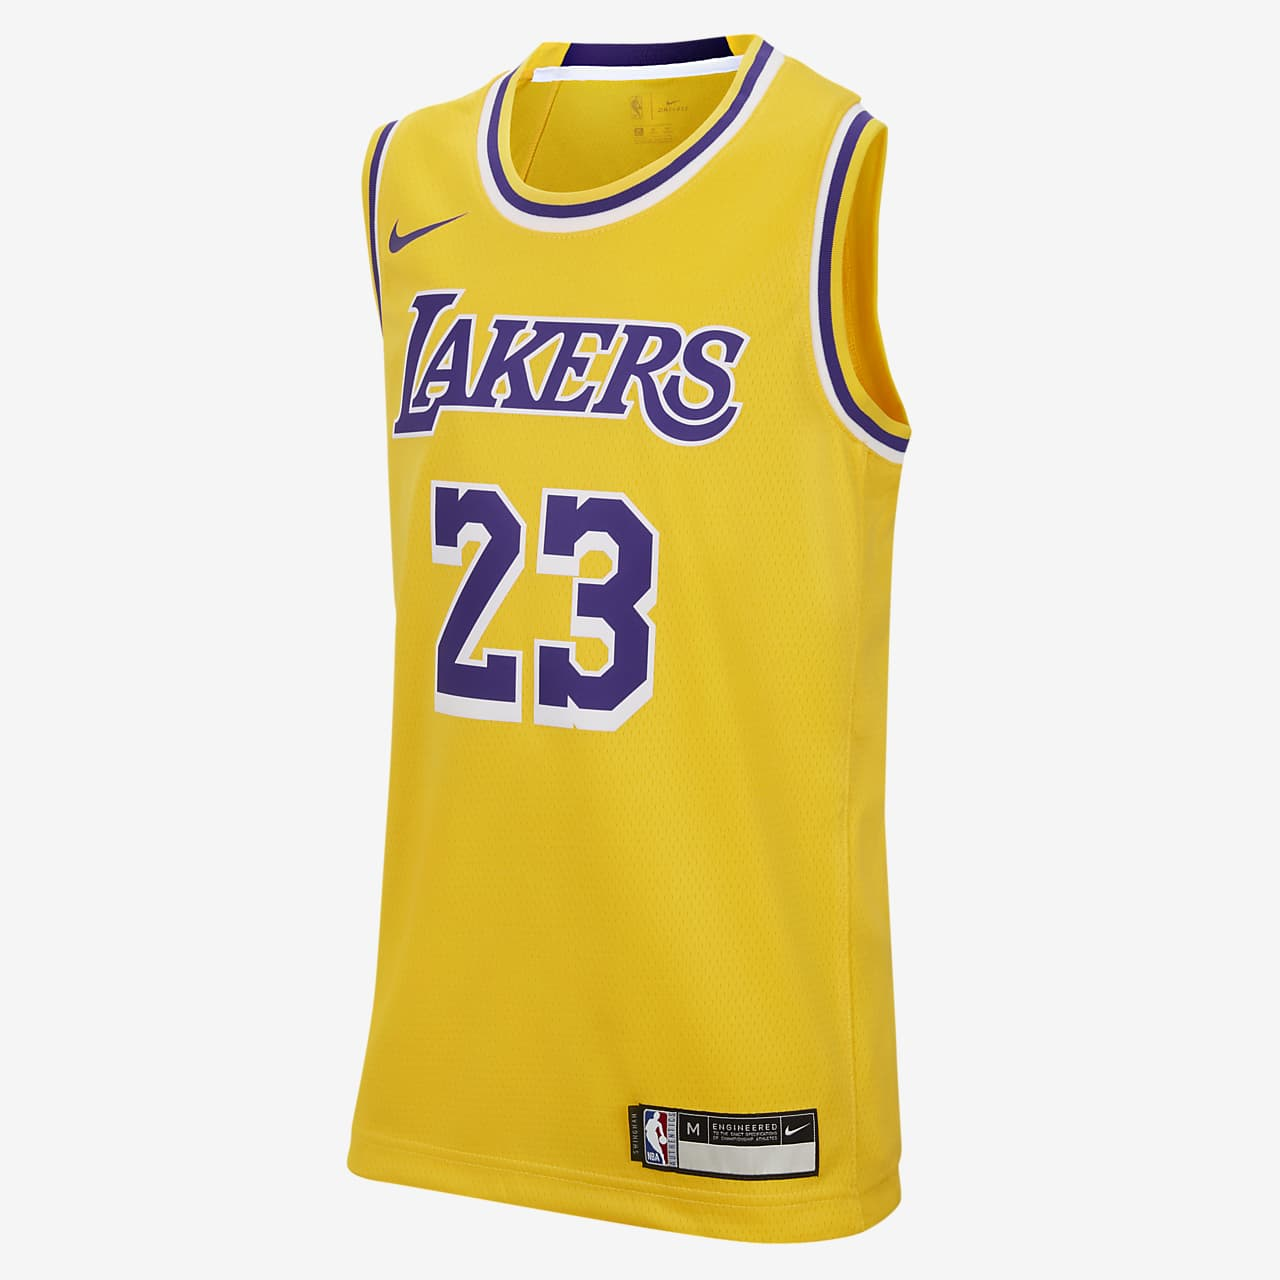 Maillot Nike NBA Icon Edition Swingman (Los Angeles Lakers) pour Enfant plus âgé